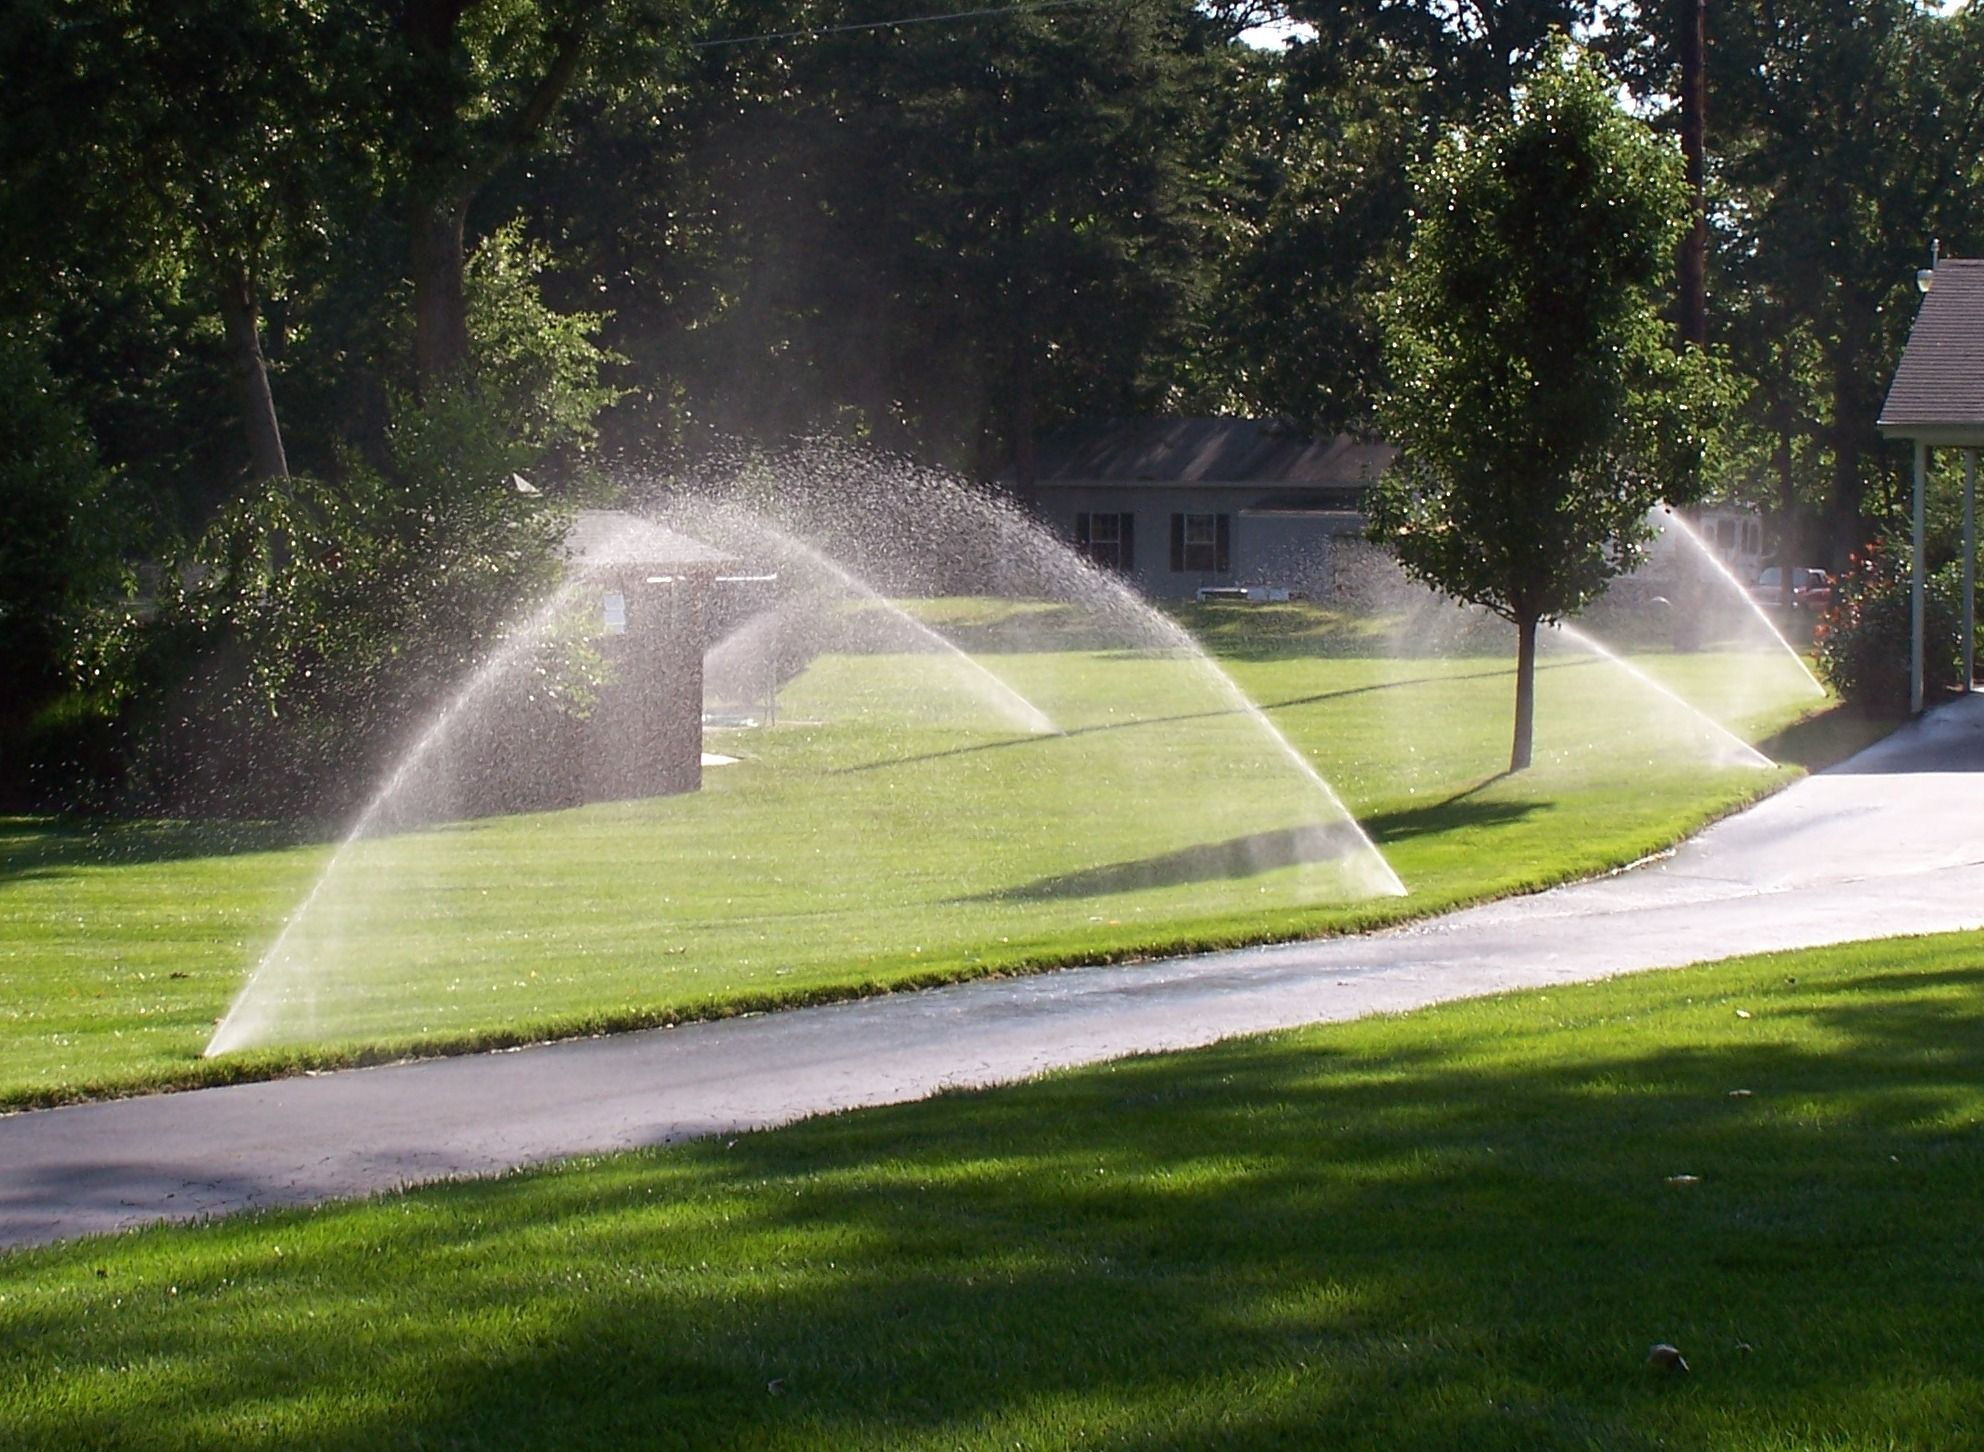 when putting in a sprinkler system how do you measure the